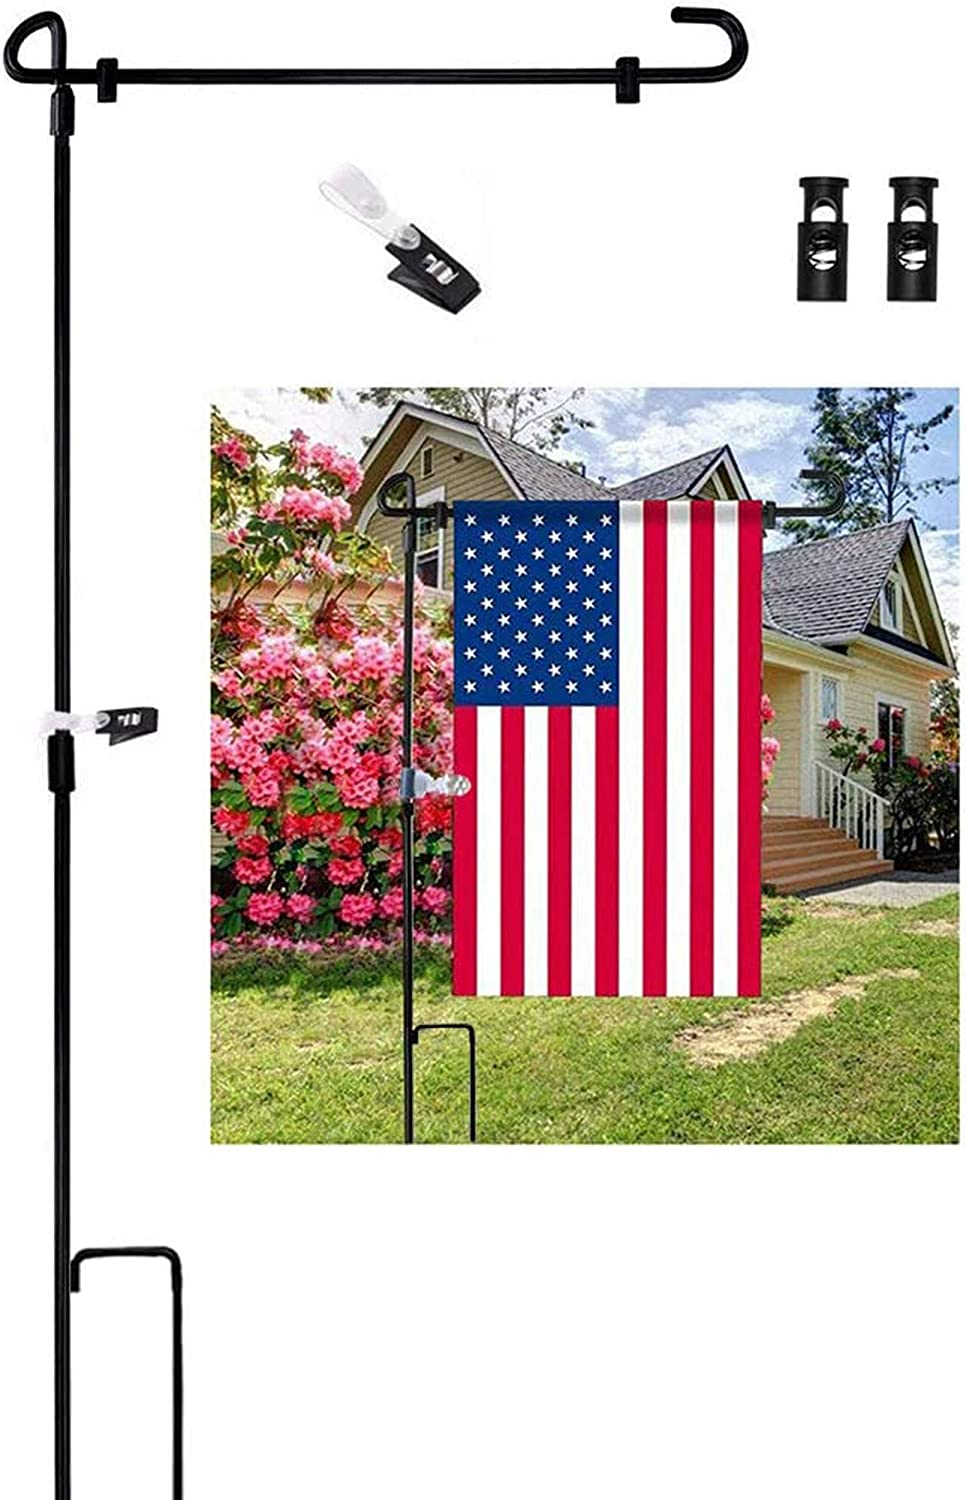 XCH Garden Flag Stand Flagpole, Black Wrought Iron Yard Garden Flag Pole - Holds Flags up to 15